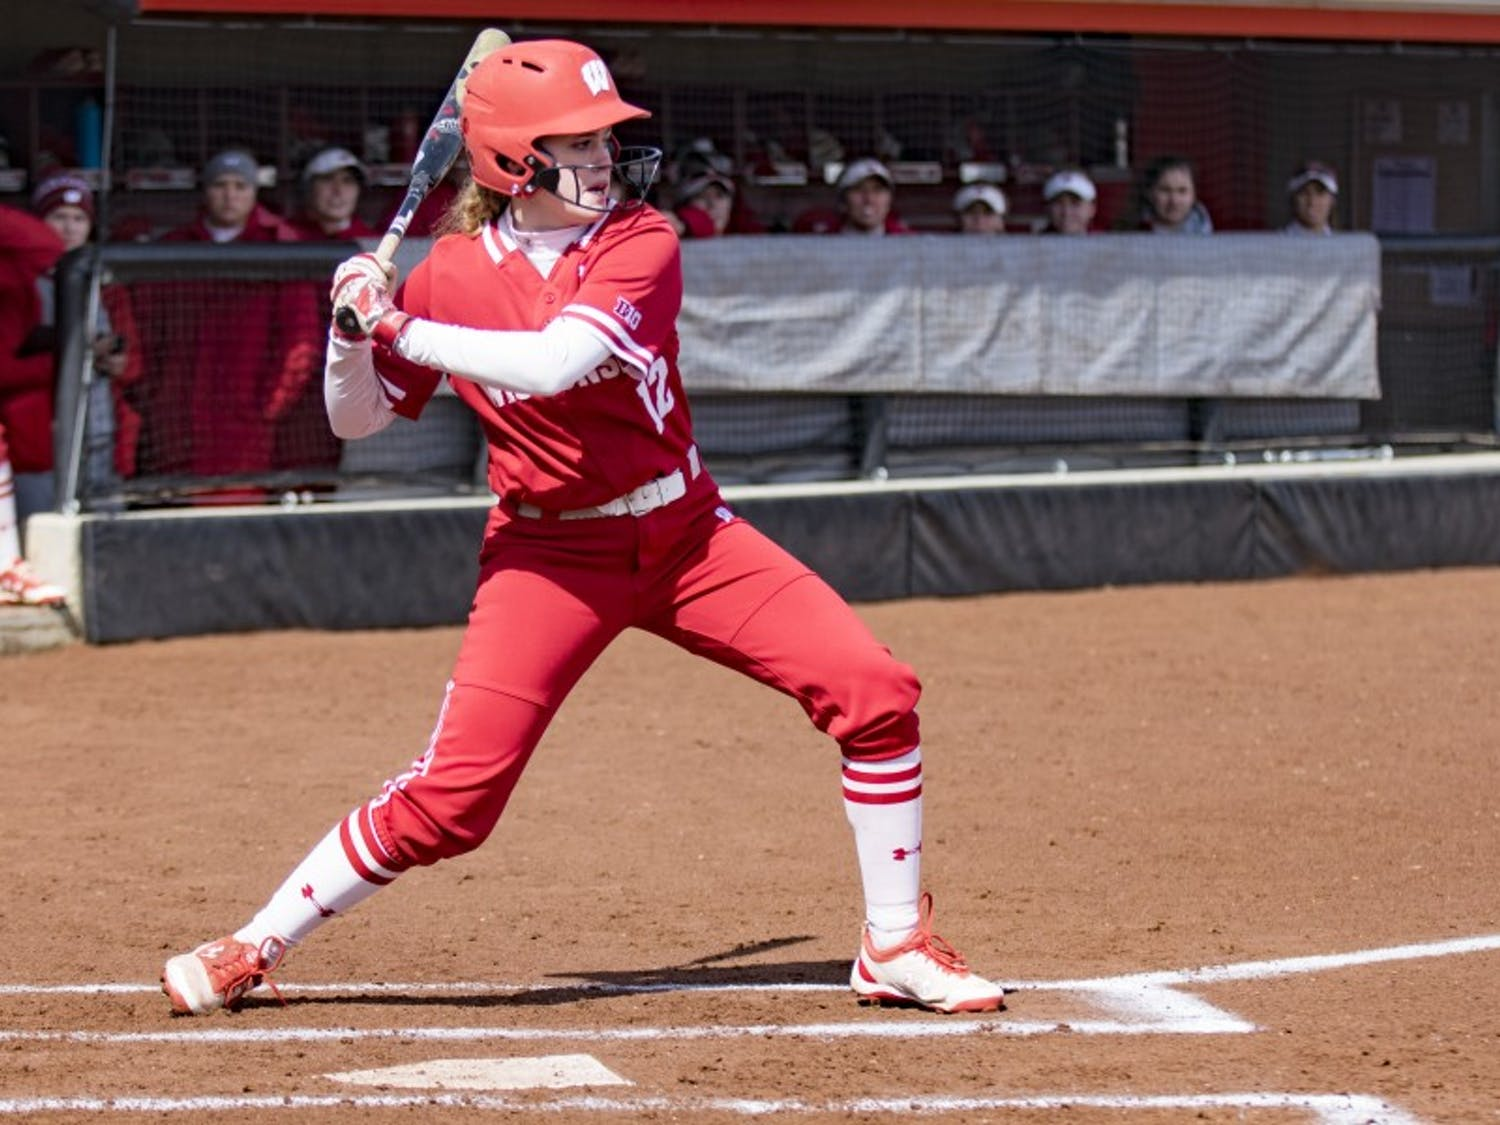 Melanie Cross's grand slam helped UW win both of its games this weekend and take the series against Purdue.